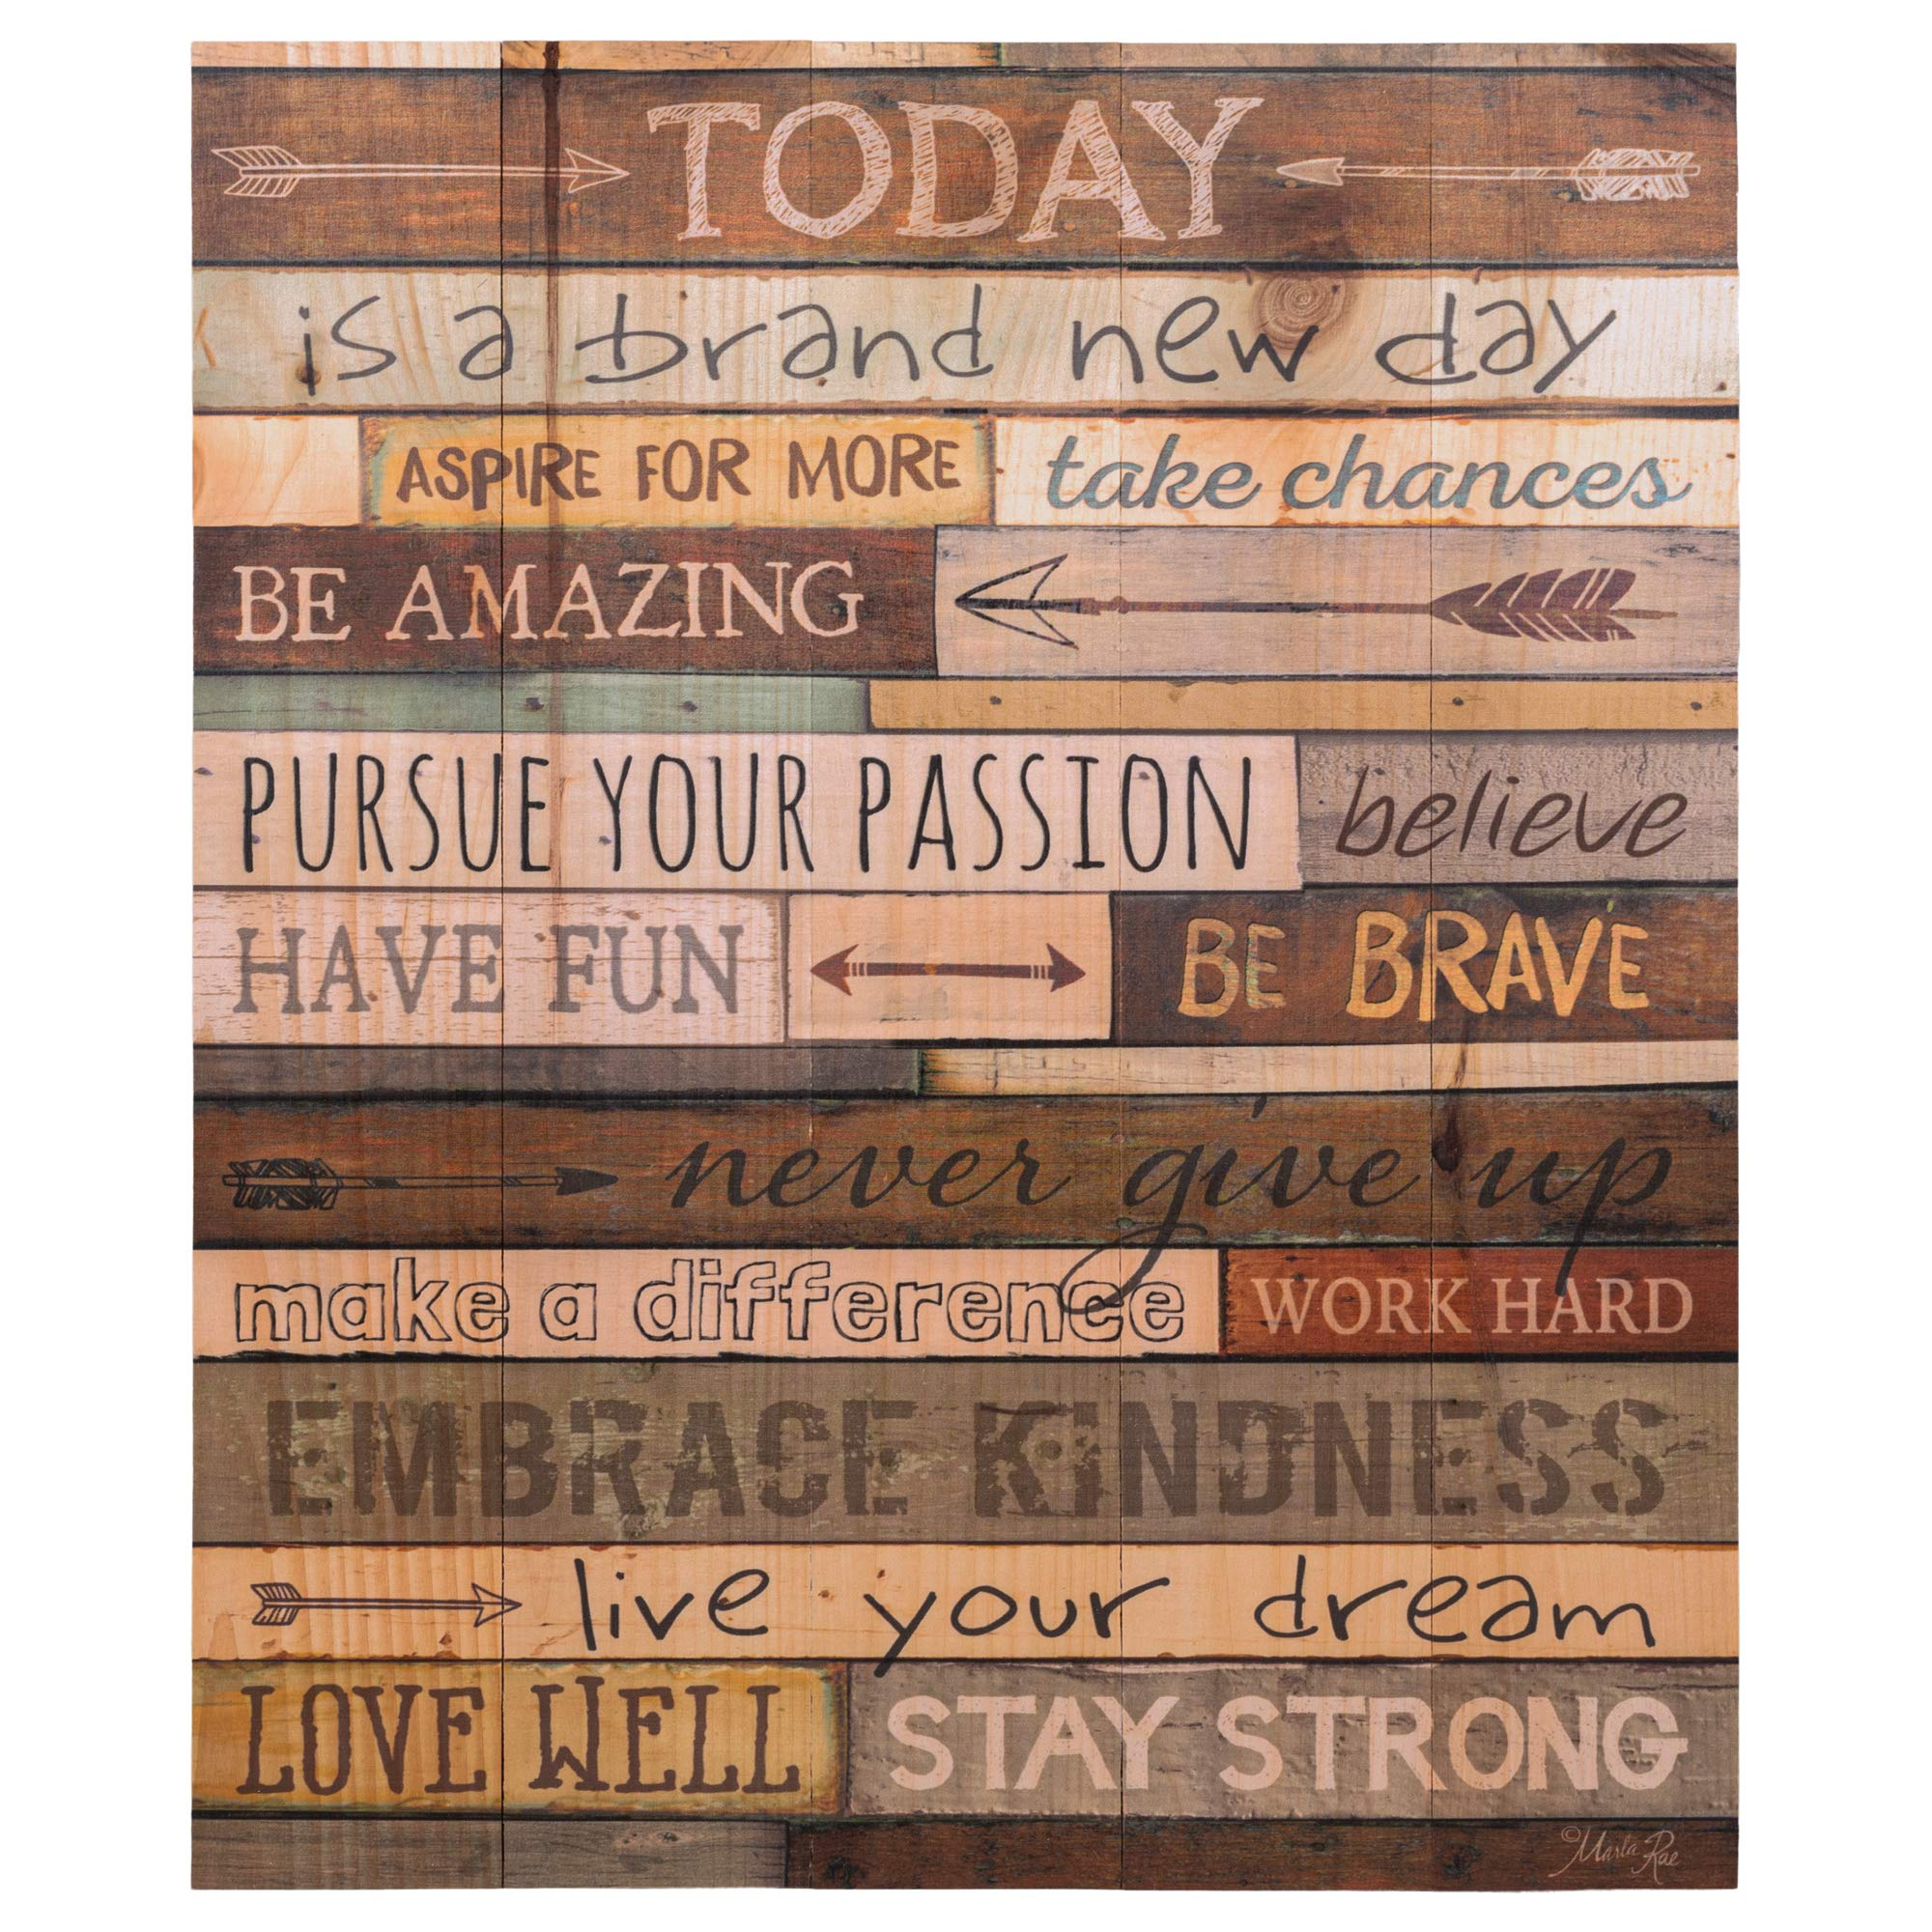 Today is a Day Inspirational Phrases 21 x 18 Wood Pallet Wall Art Sign Plaque by P. Graham Dunn